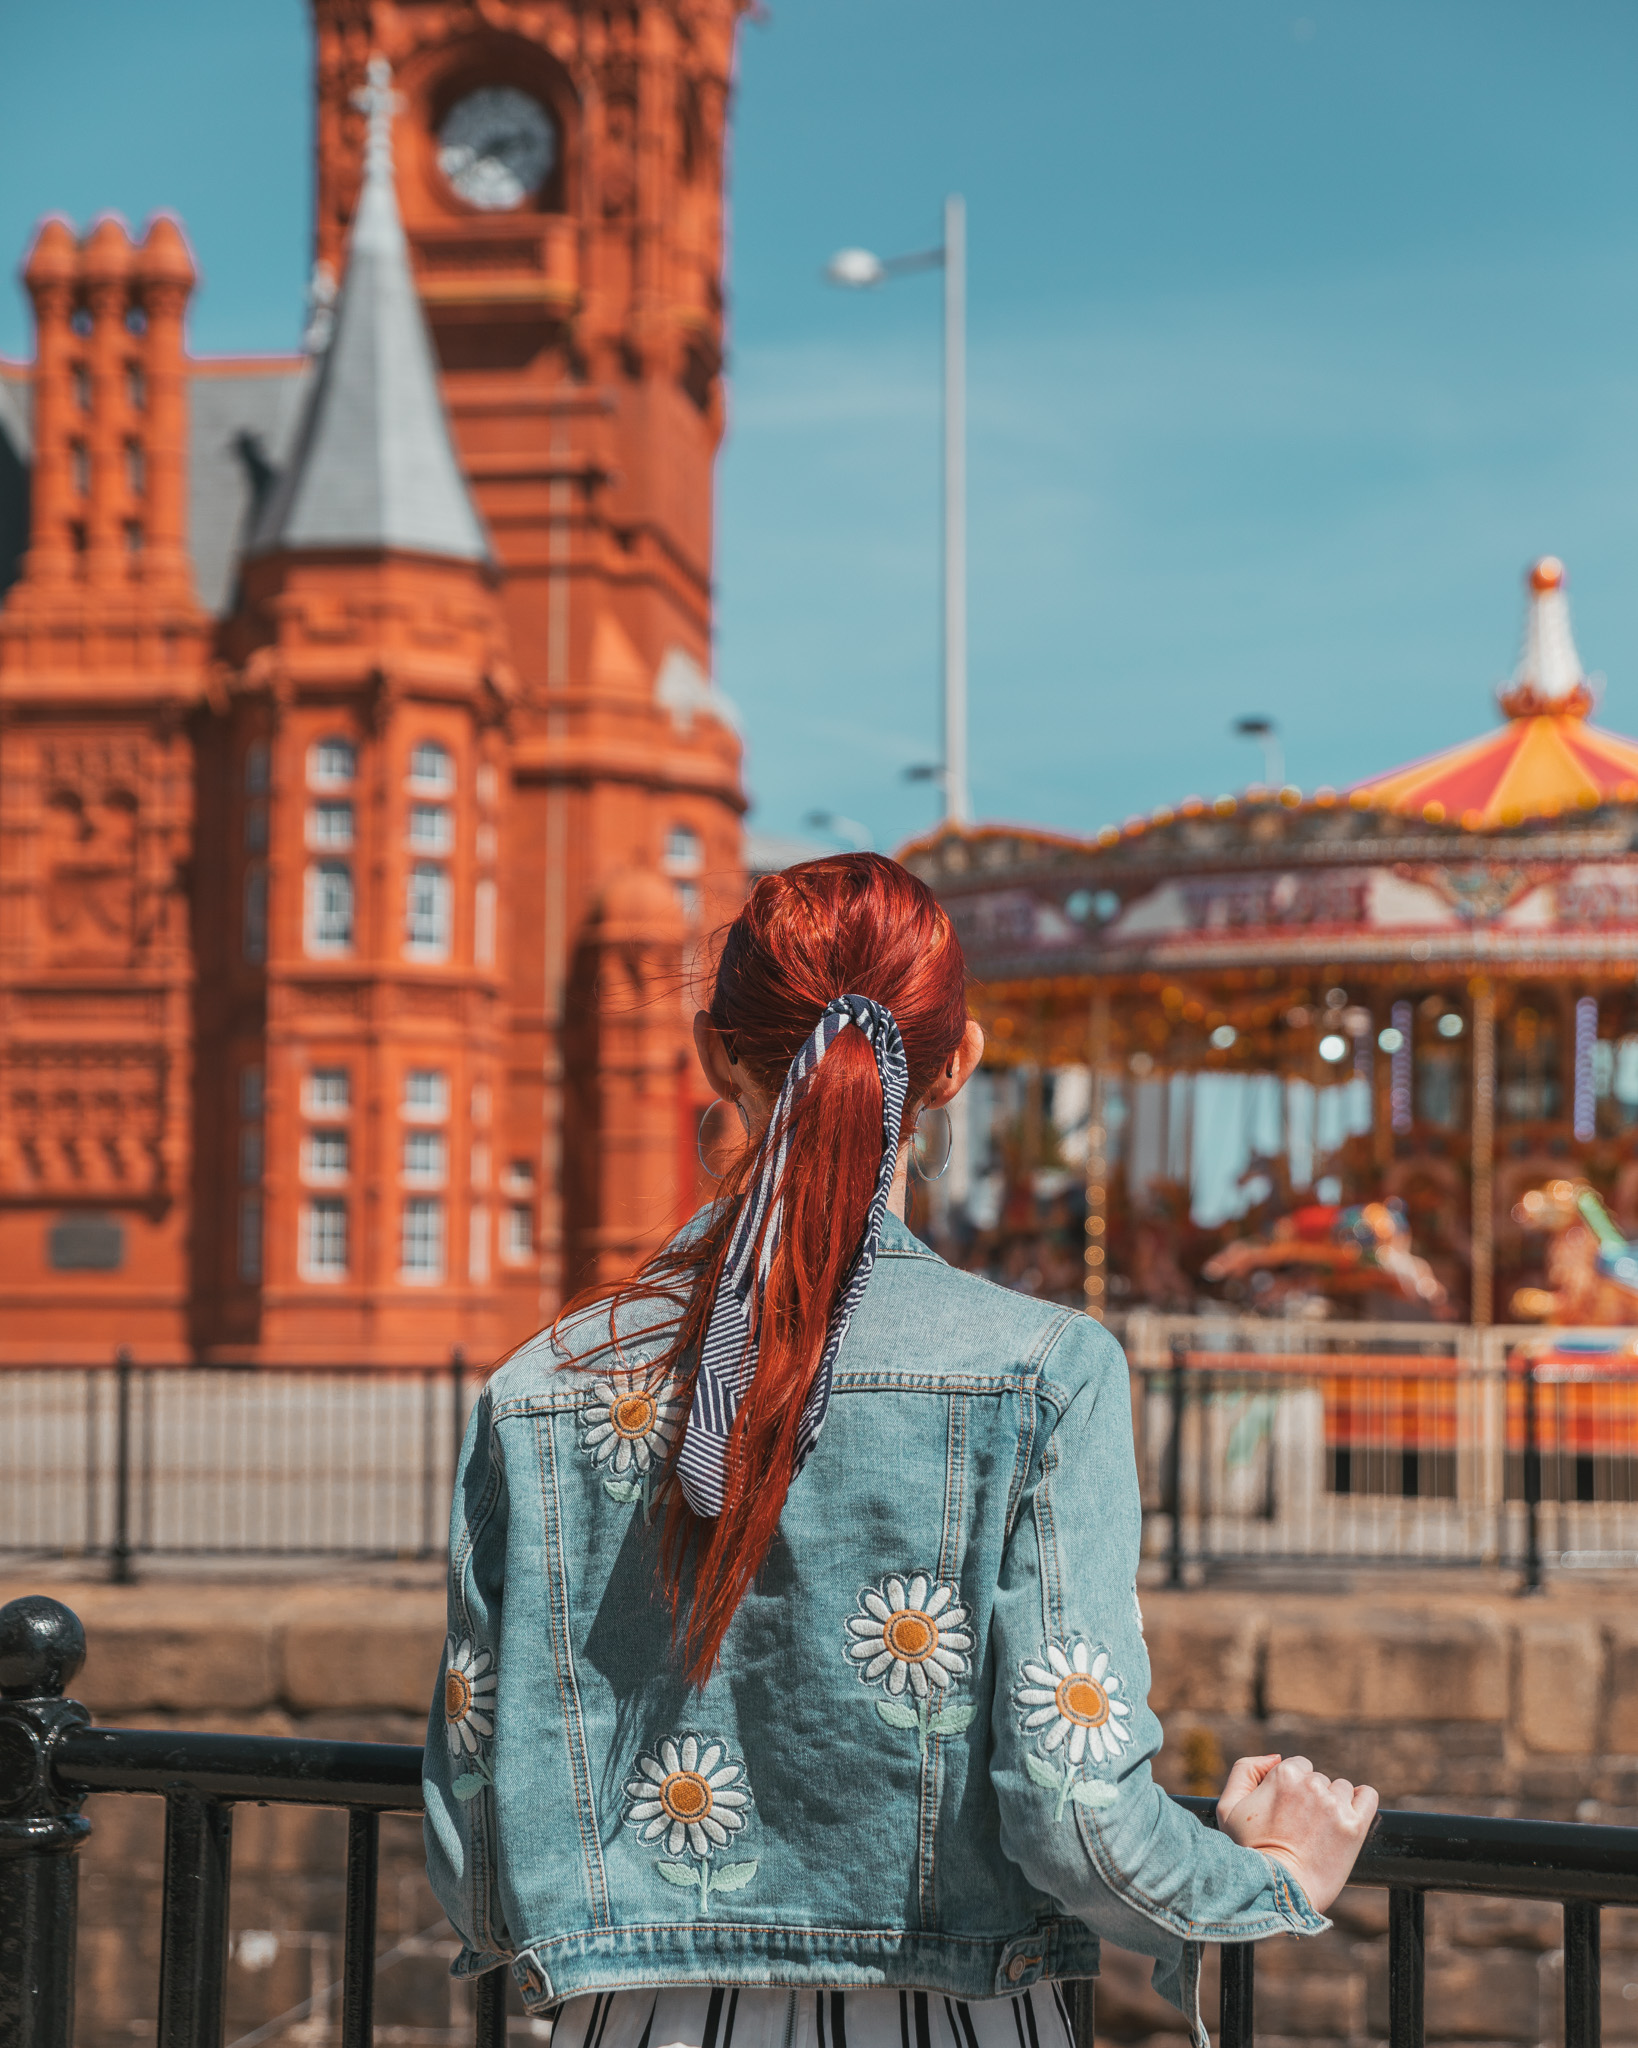 Cardiff // The Most Beautiful Places to Visit in Wales // #readysetjetset #wales #uk #welsh #travel #photospots #blogpost